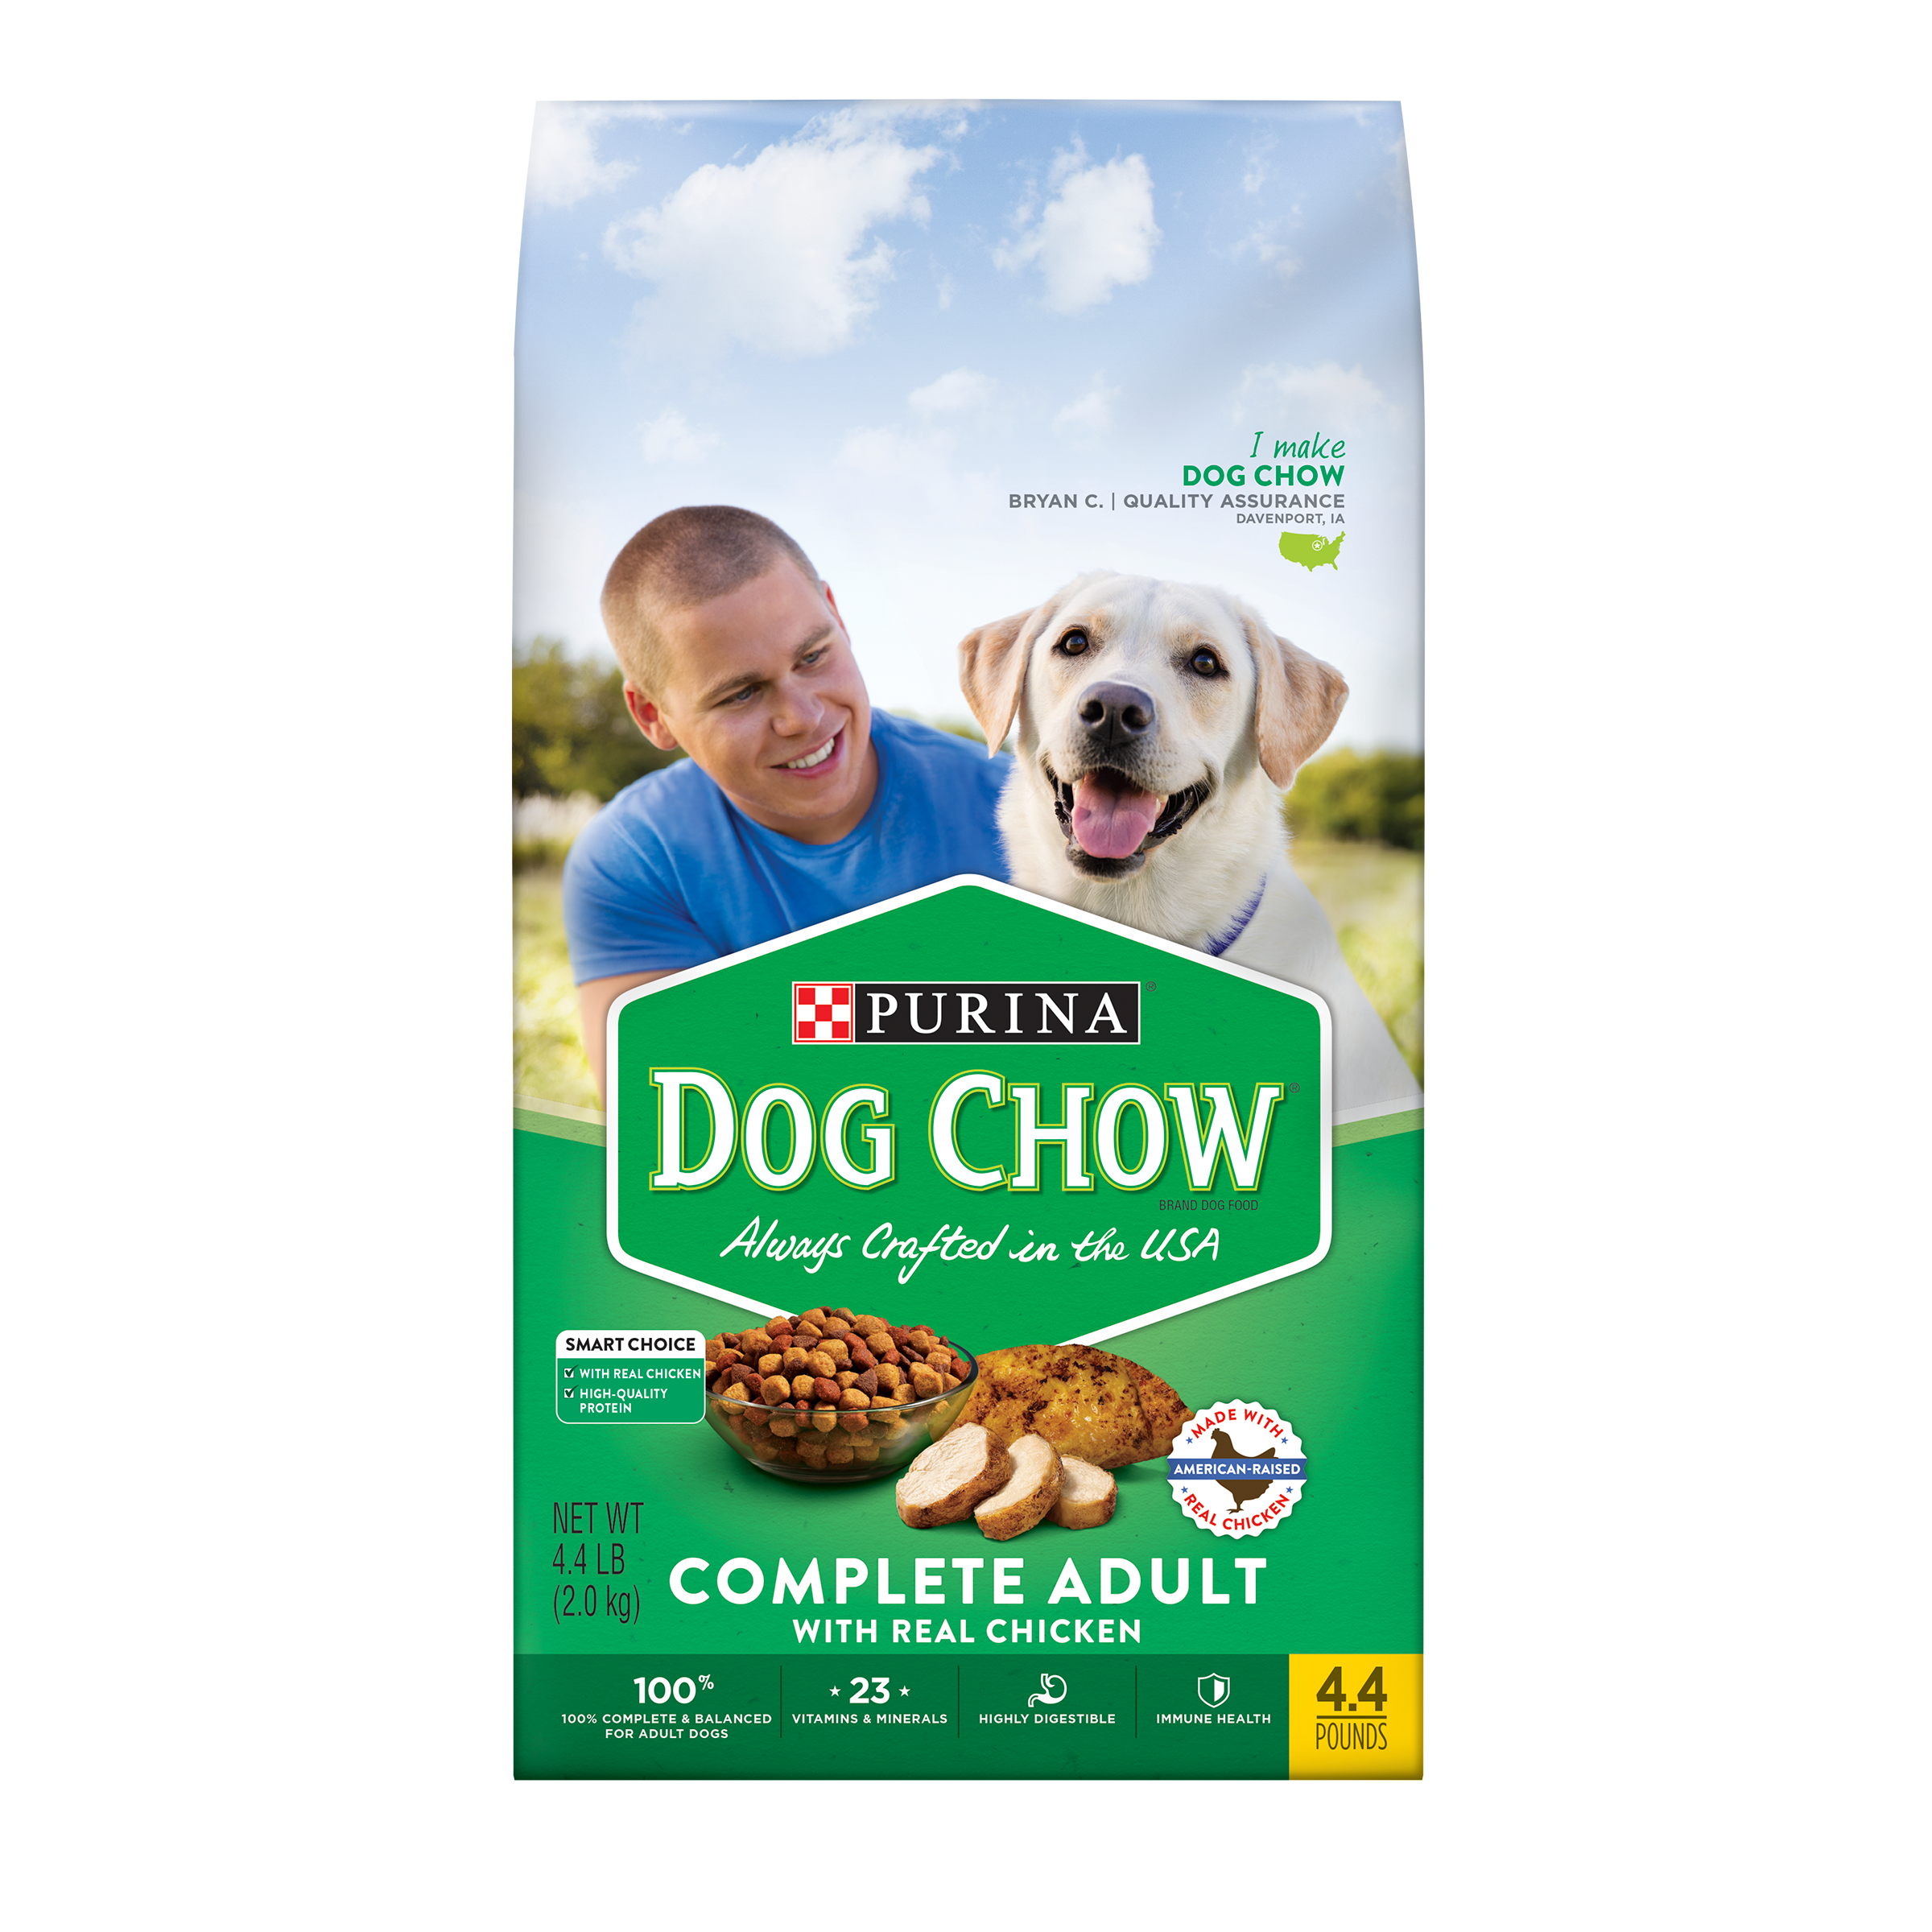 Purina Dog Chow Dry Dog Food; Complete Adult With Real Chicken - 4.4 lb. Bag